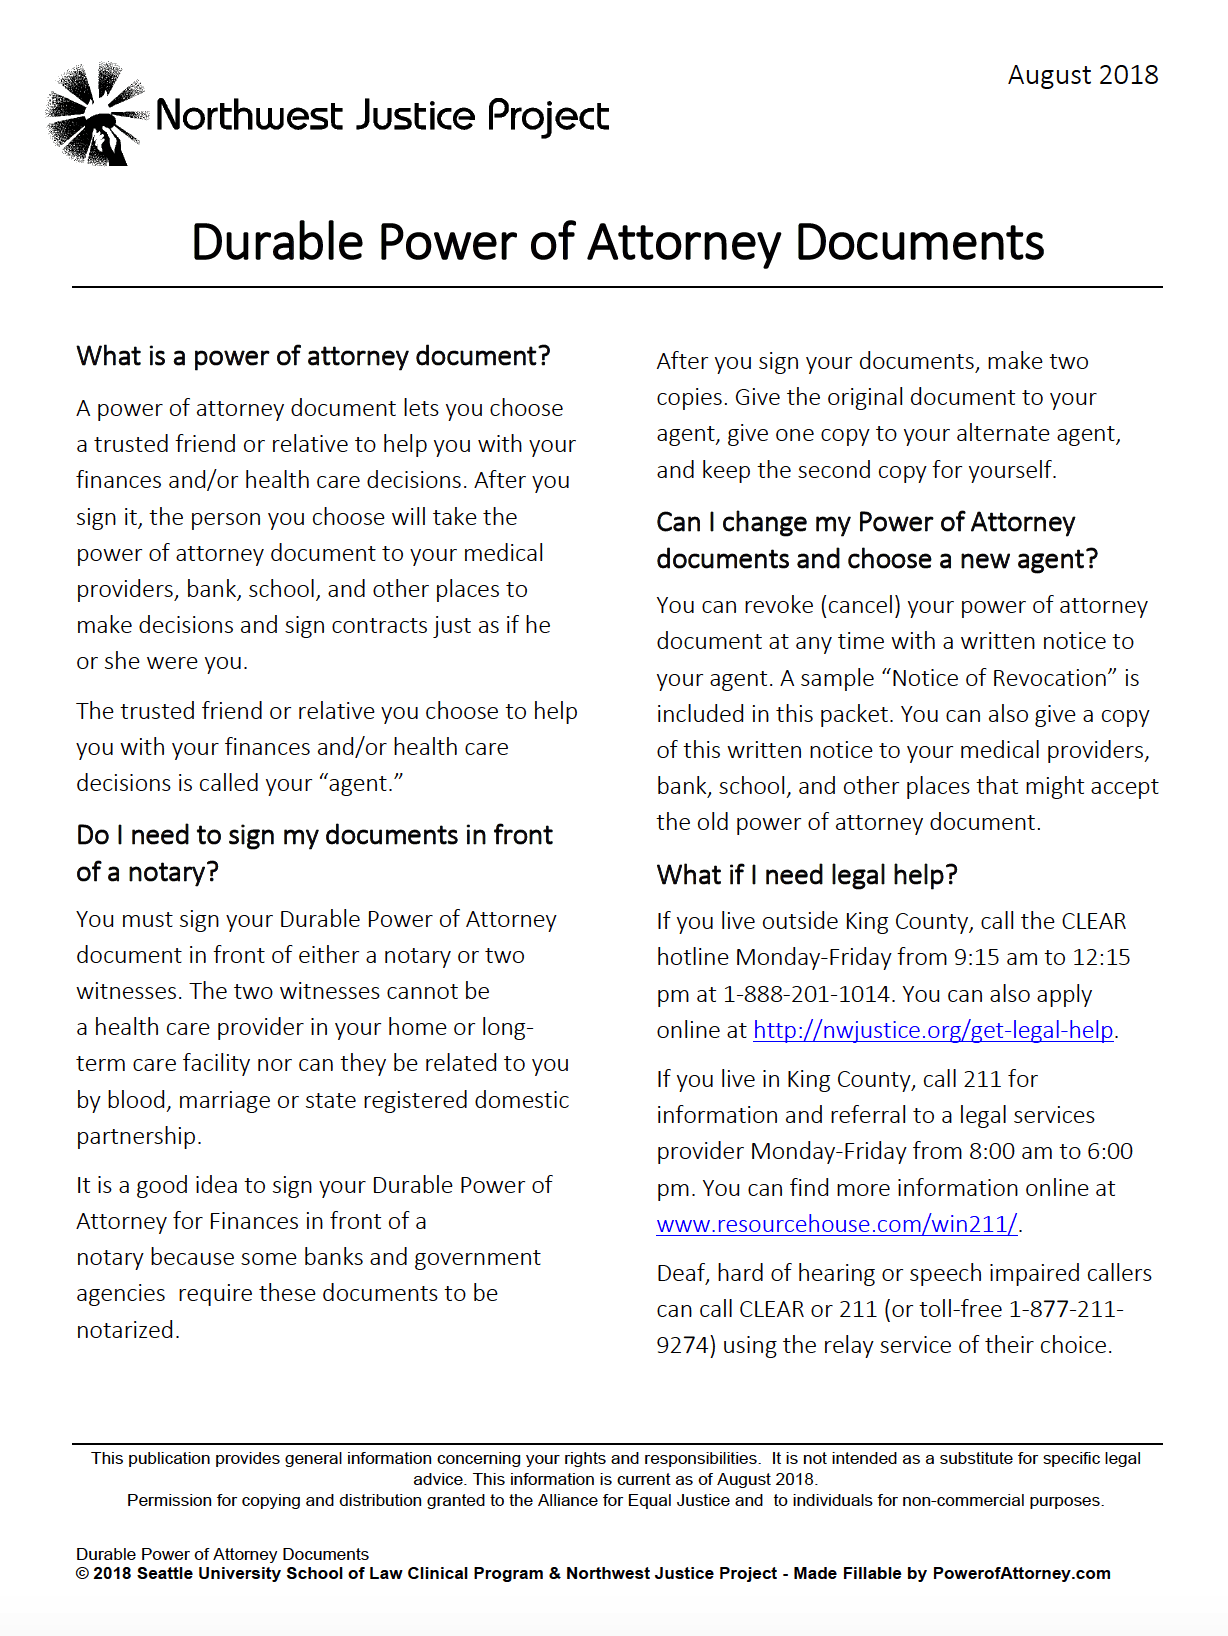 Free Durable Power Of Attorney Washington Form Adobe